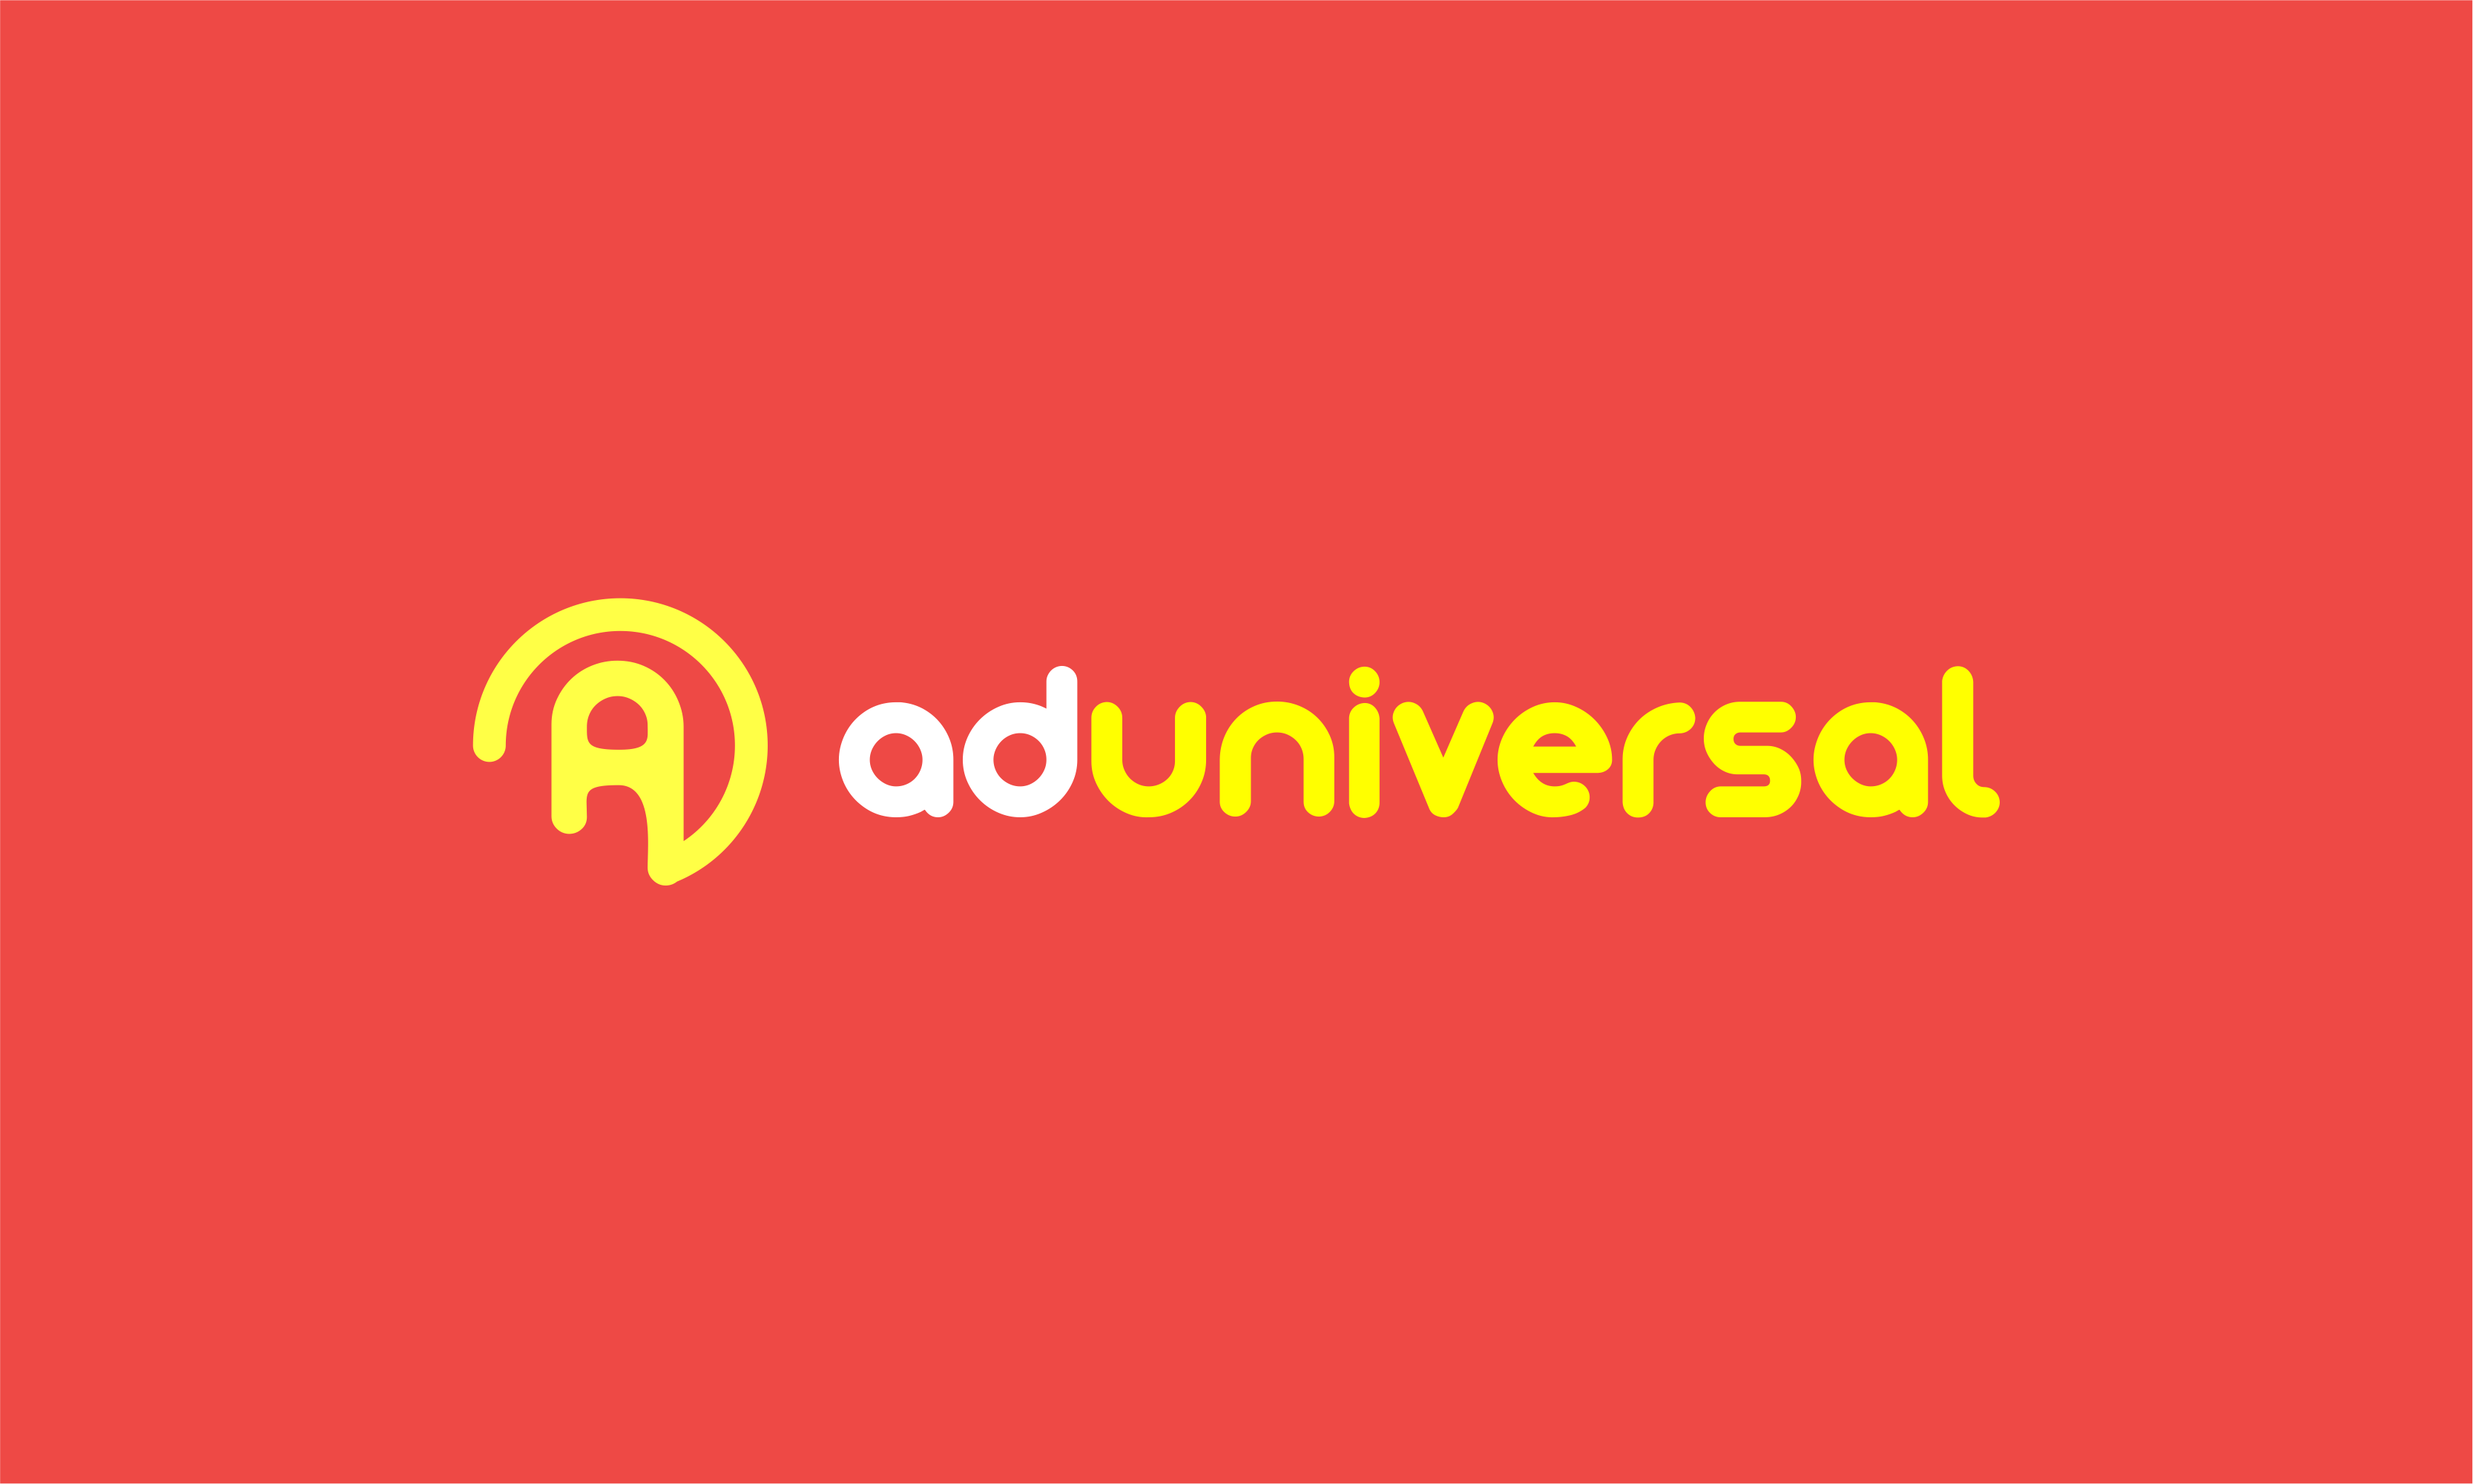 Aduniversal - Advertising company name for sale